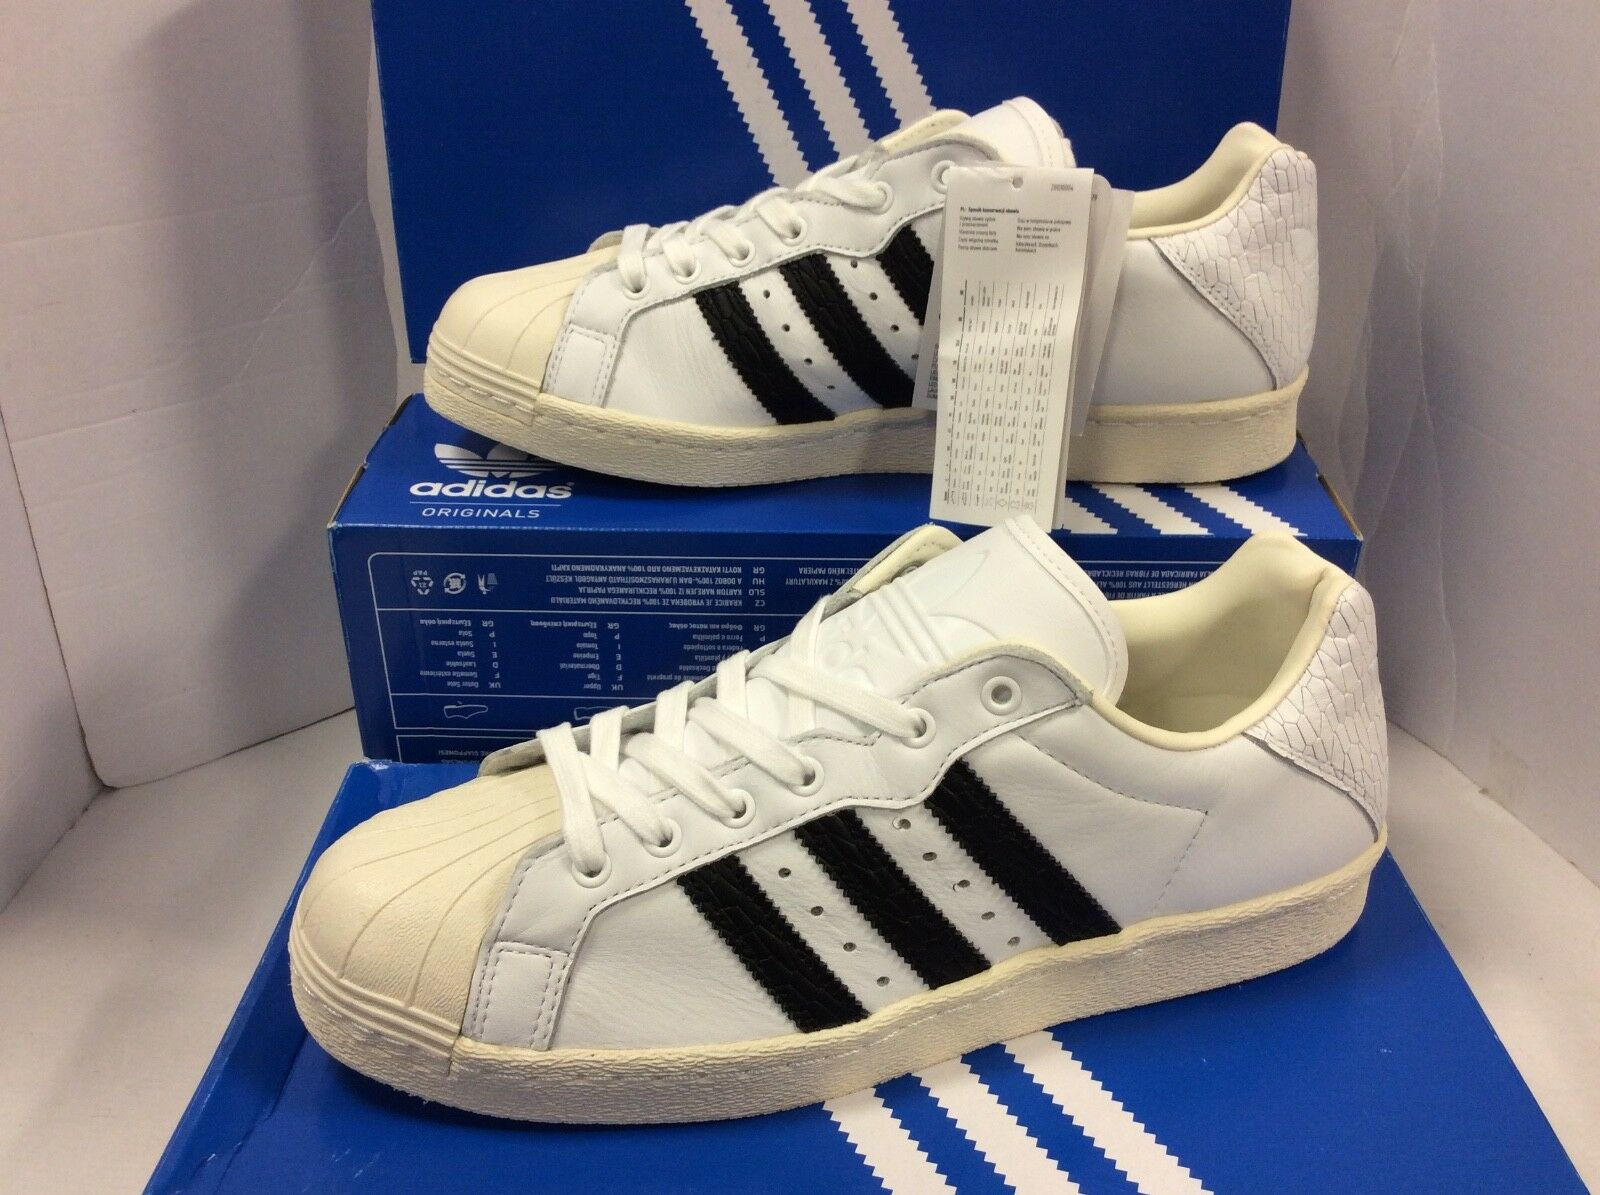 Adidas  Originals Ultrastar 80 S BB0171  Adidas 's Trainers, taille / 0cd900